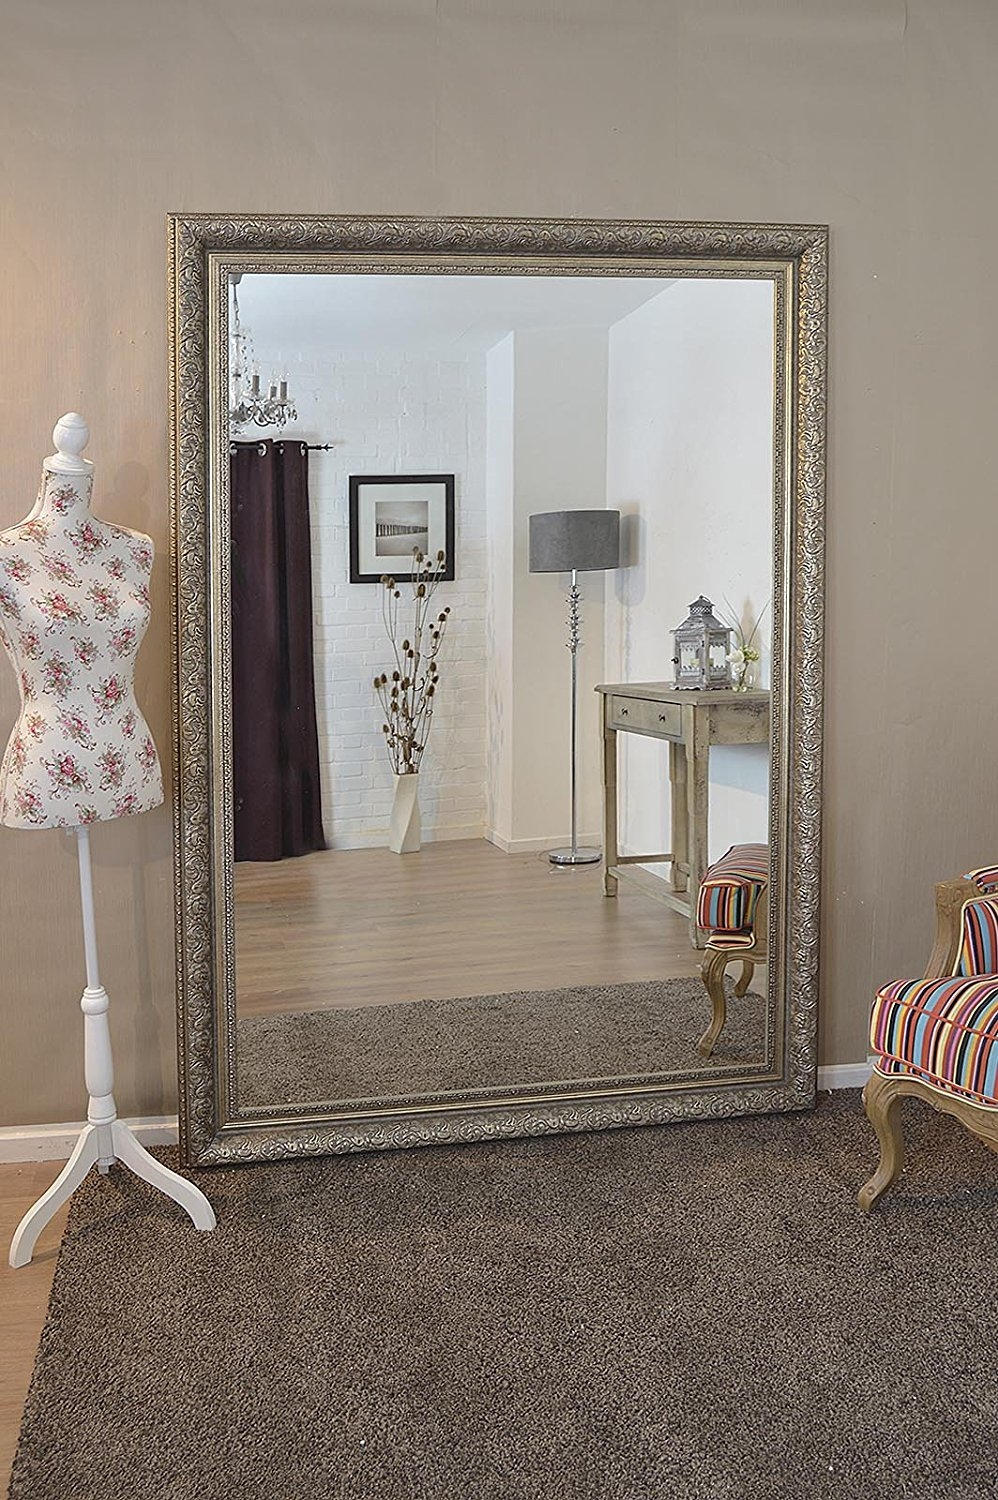 Silver Wall Mirrors Decorative Inarace In Large Ornate Wall Mirror (Image 15 of 15)